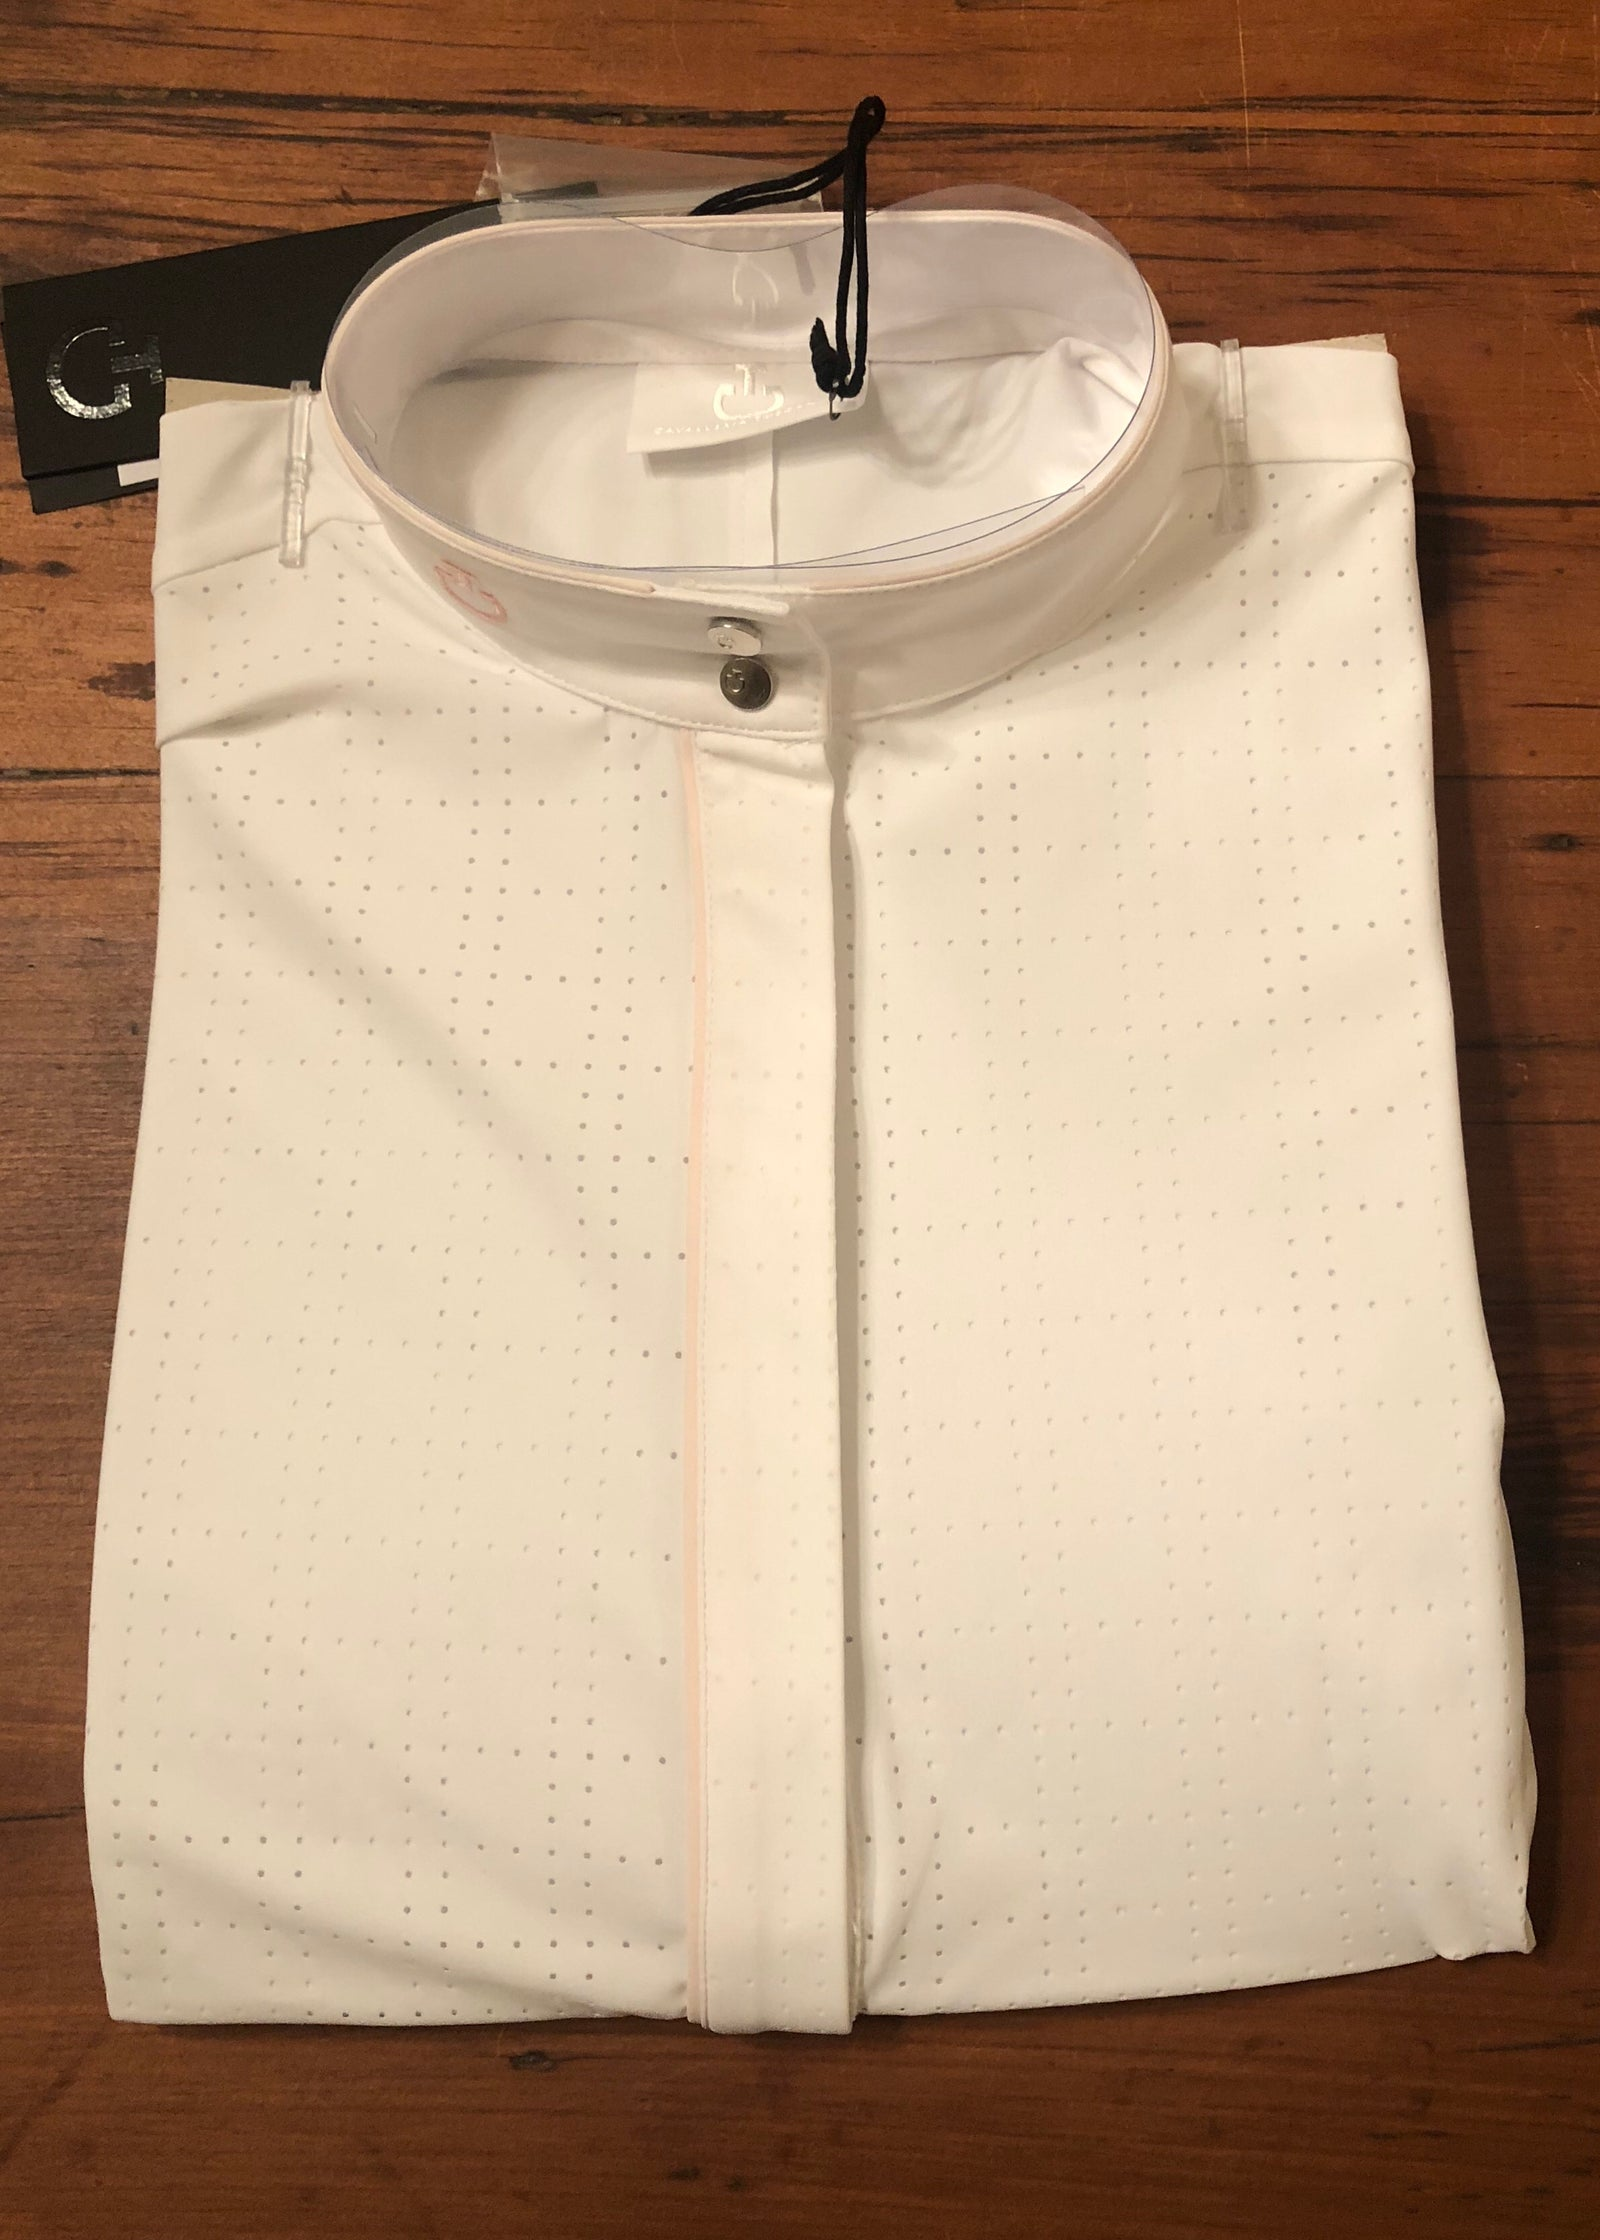 Cavalleria Toscana Perforated Competition Shirt with Piping - Luxe EQ